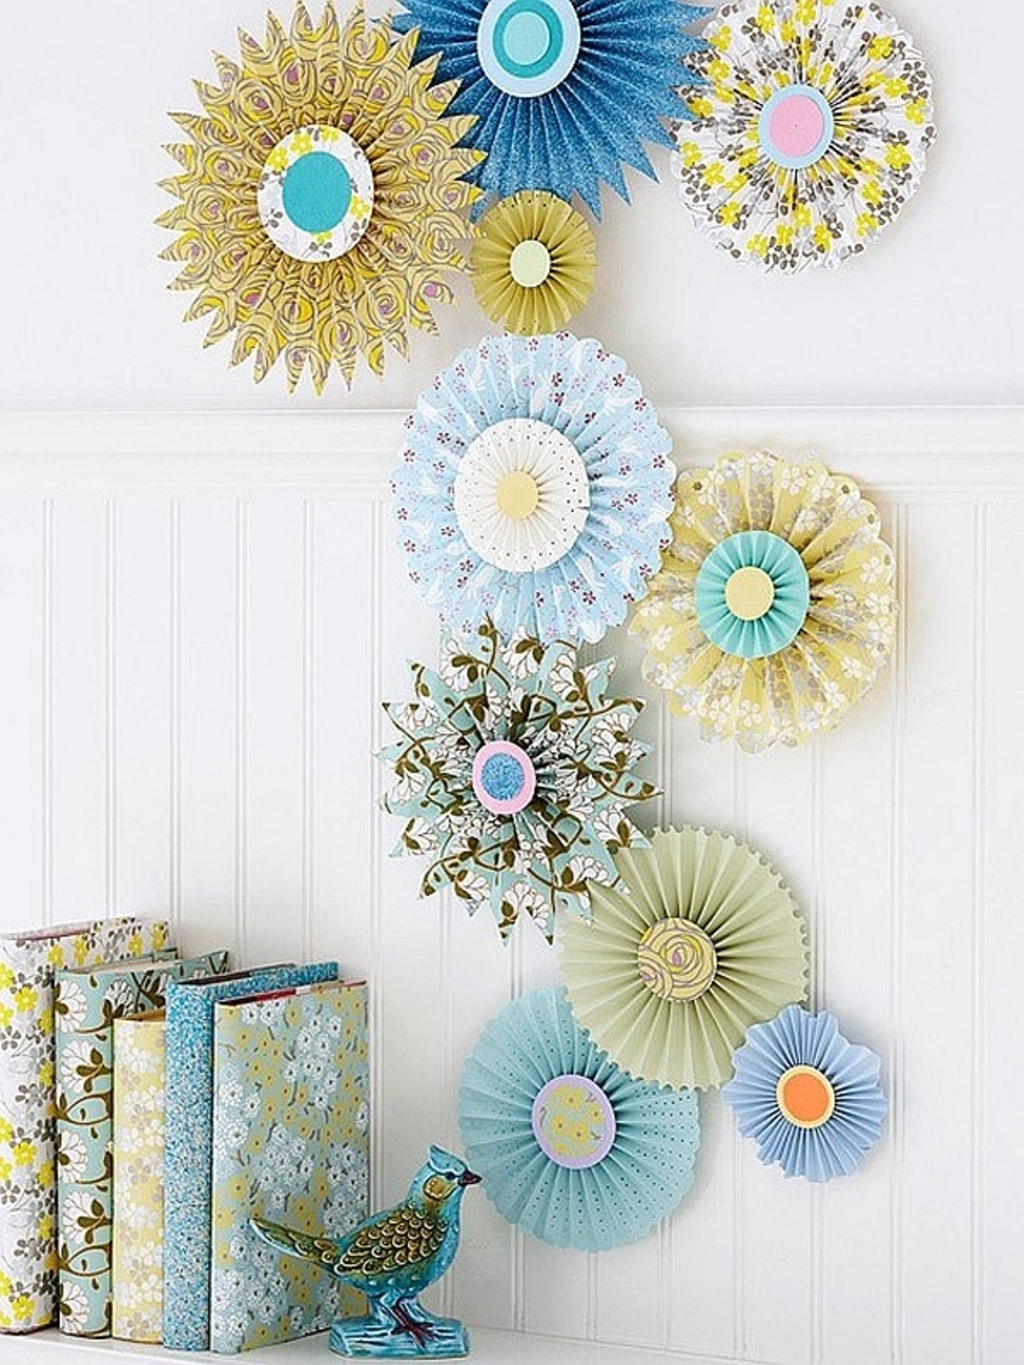 Diy Projects: Paper Wall Art Crafts – Paper Inspired Décor: Fun Ways With Most Recent Paper Wall Art (View 6 of 20)